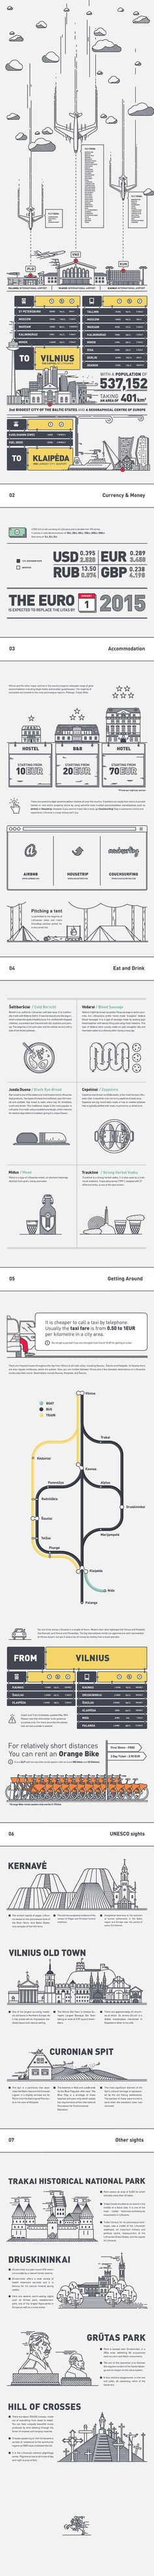 Infographic Infographic guide to Lithuania in Infographic: